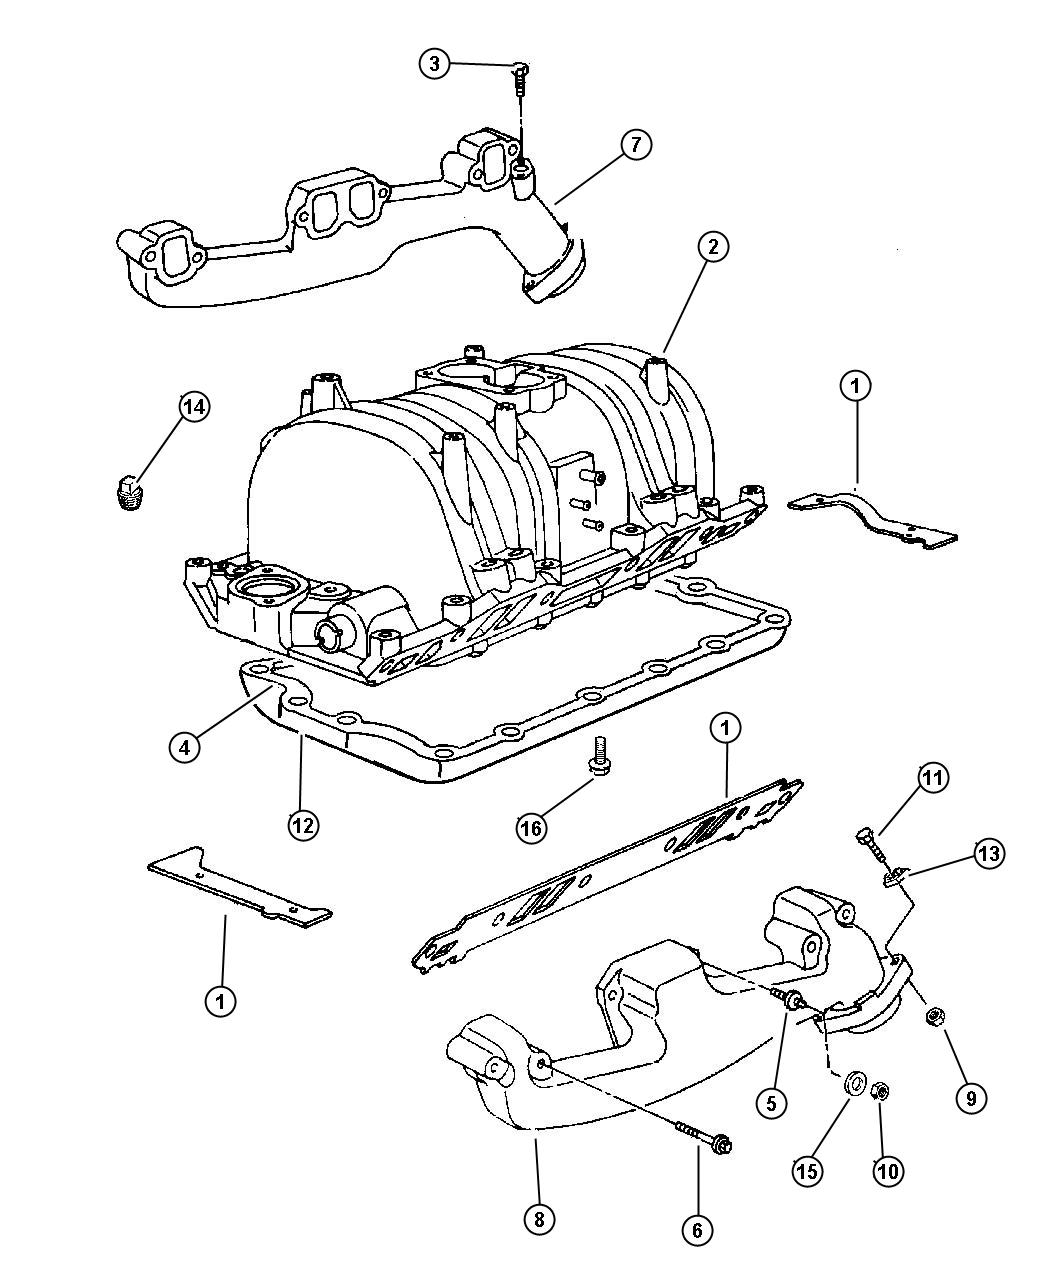 Service manual [How To Relearn The Idle 2010 Dodge Ram